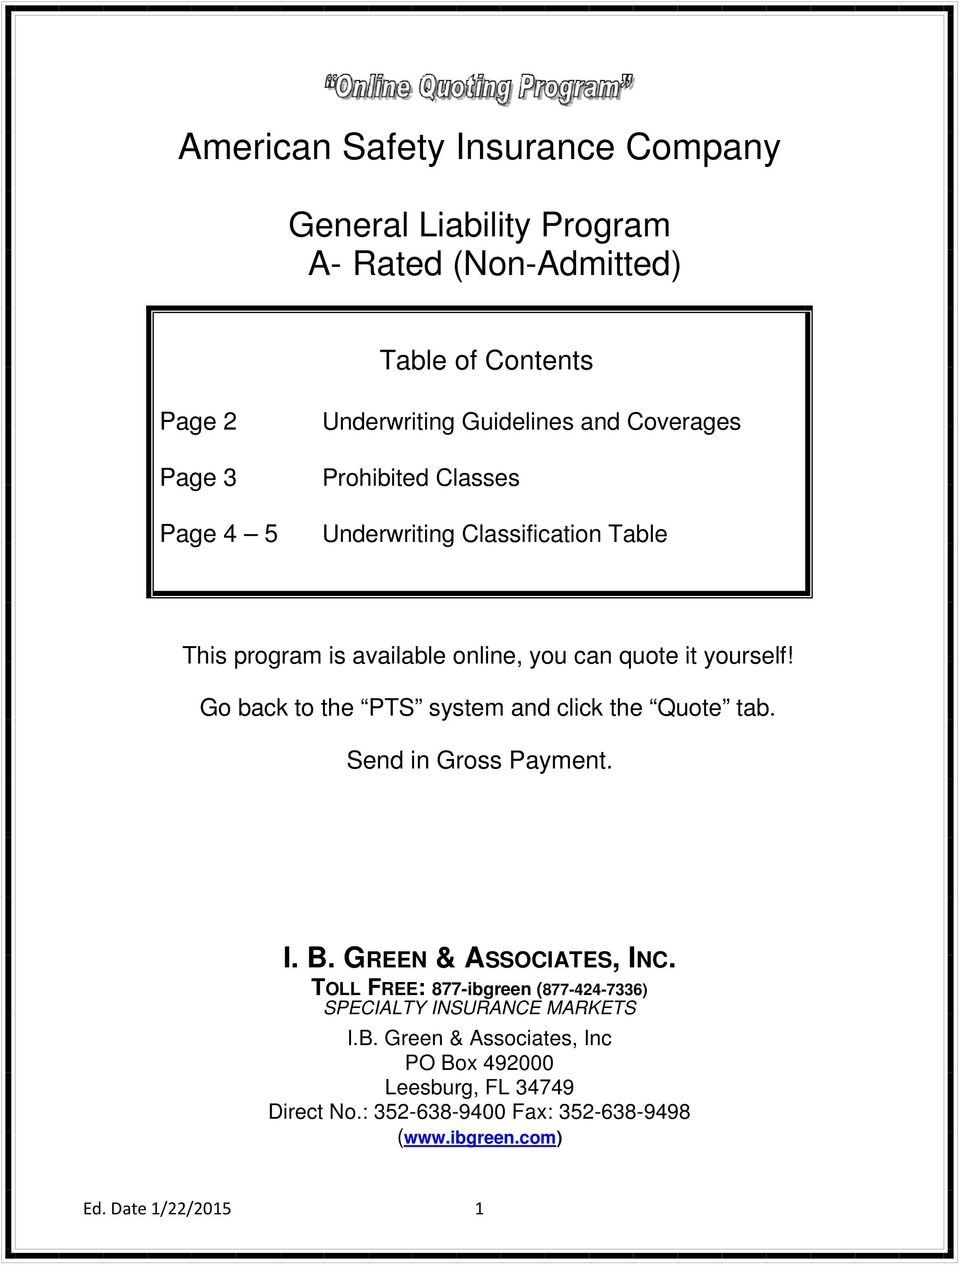 Go back to the PTS system and click the Quote tab. Send in Gross Payment. I. B. GREEN & ASSOCIATES, INC.